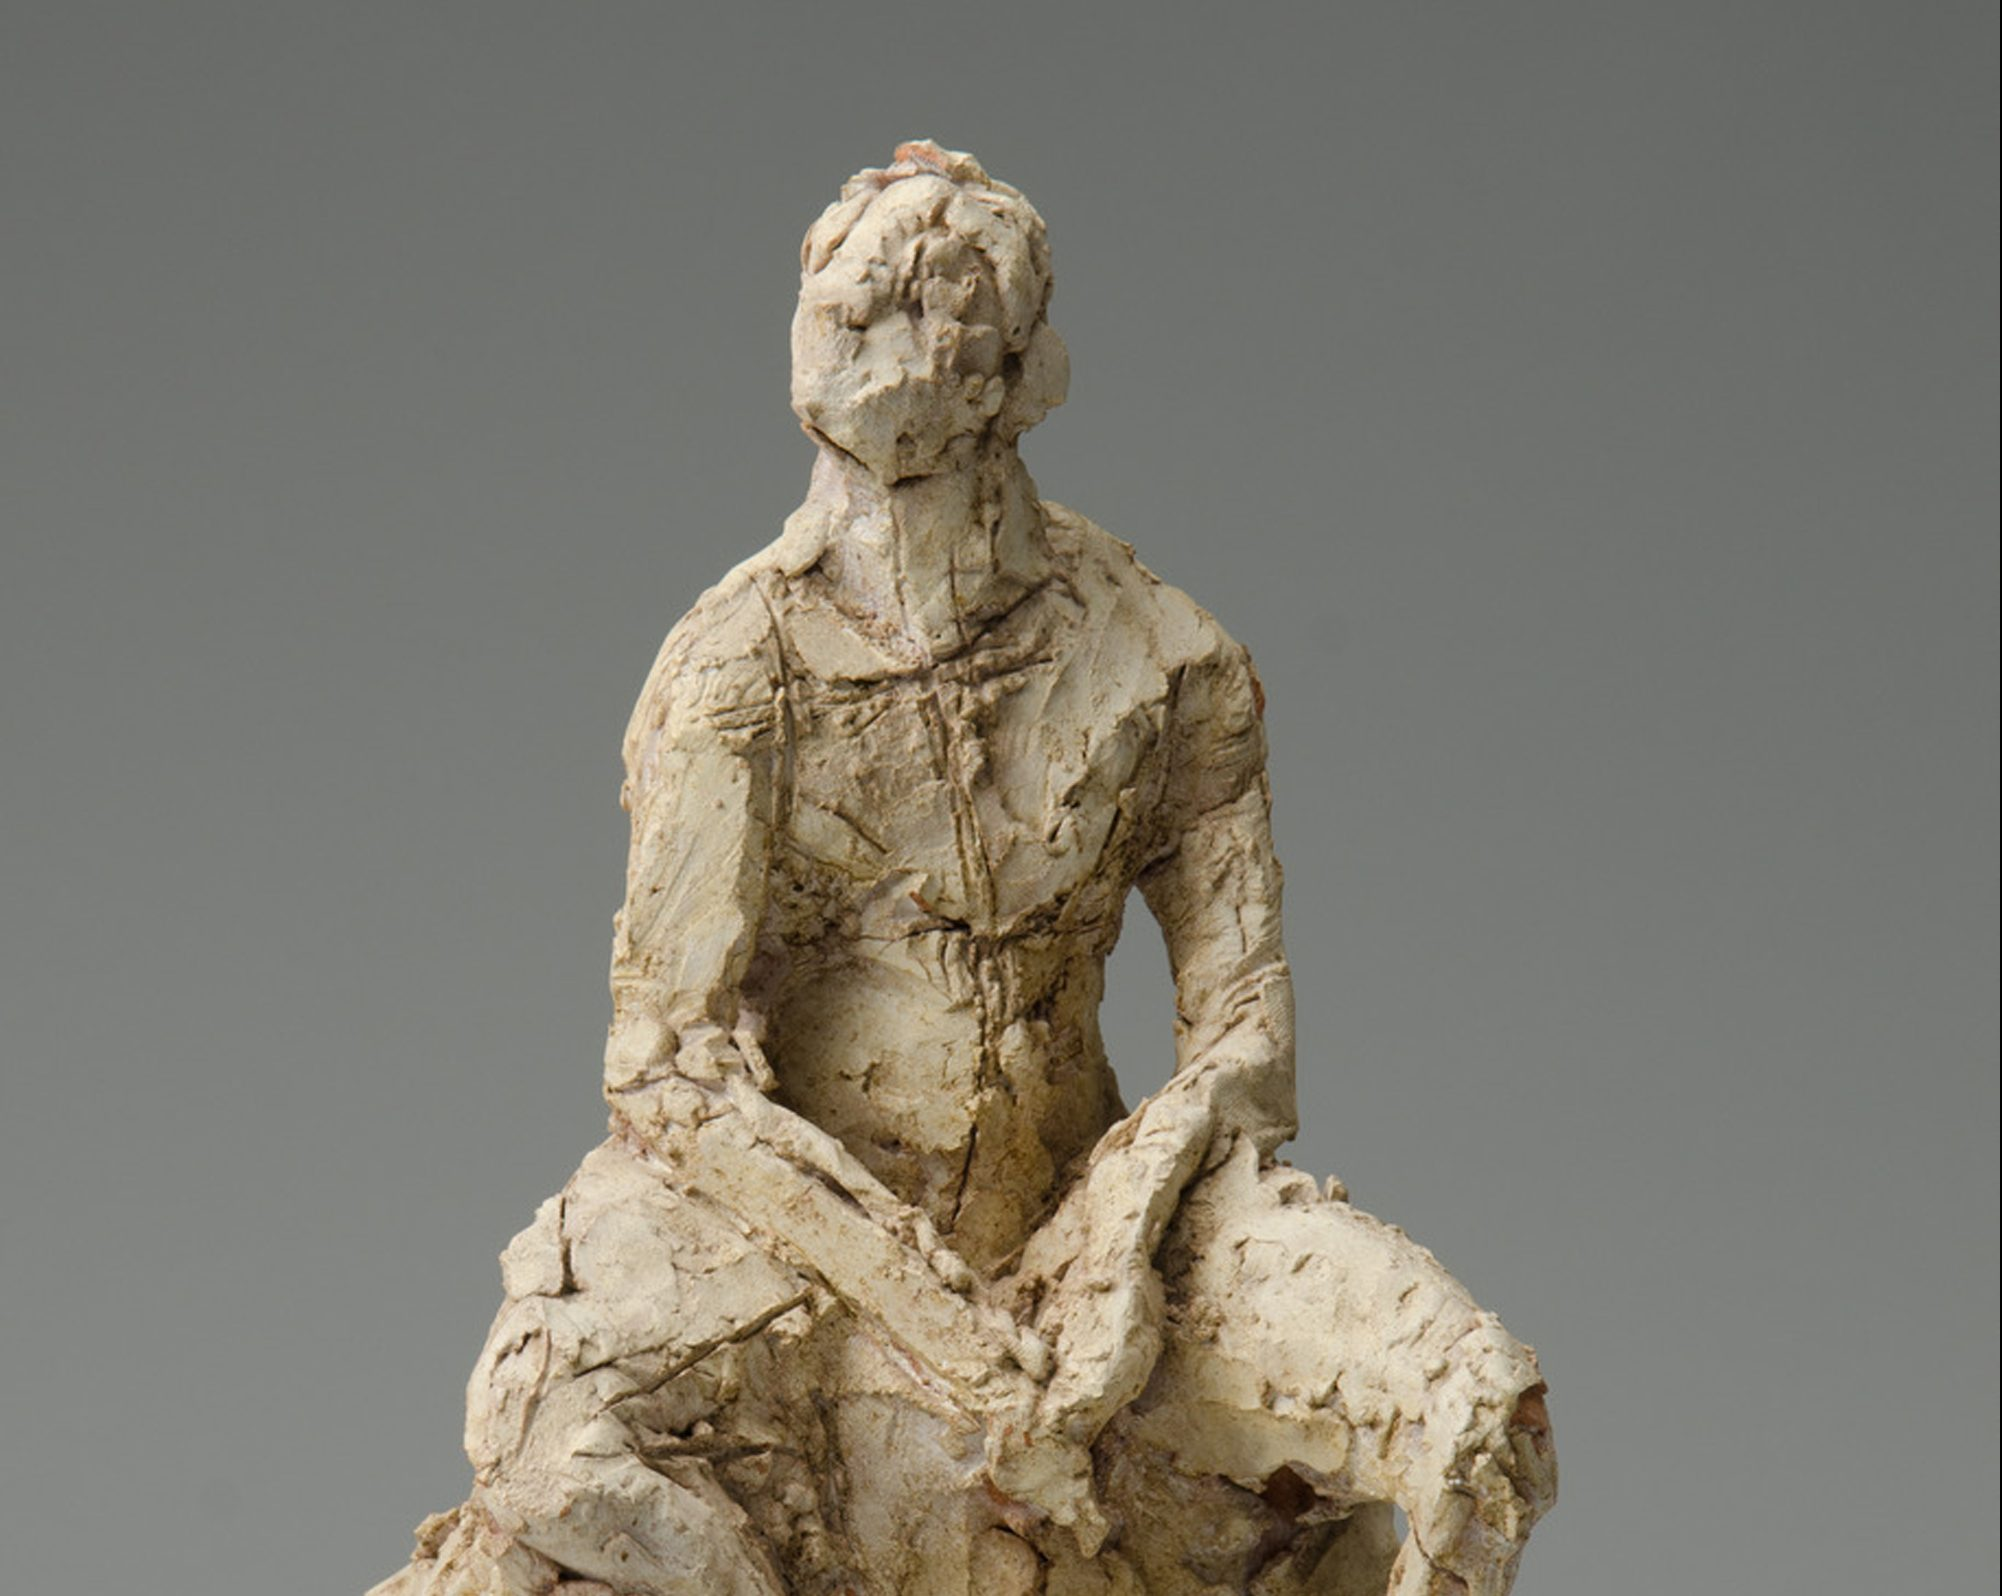 Figurative Sculpture with a Model / Avner Levinson